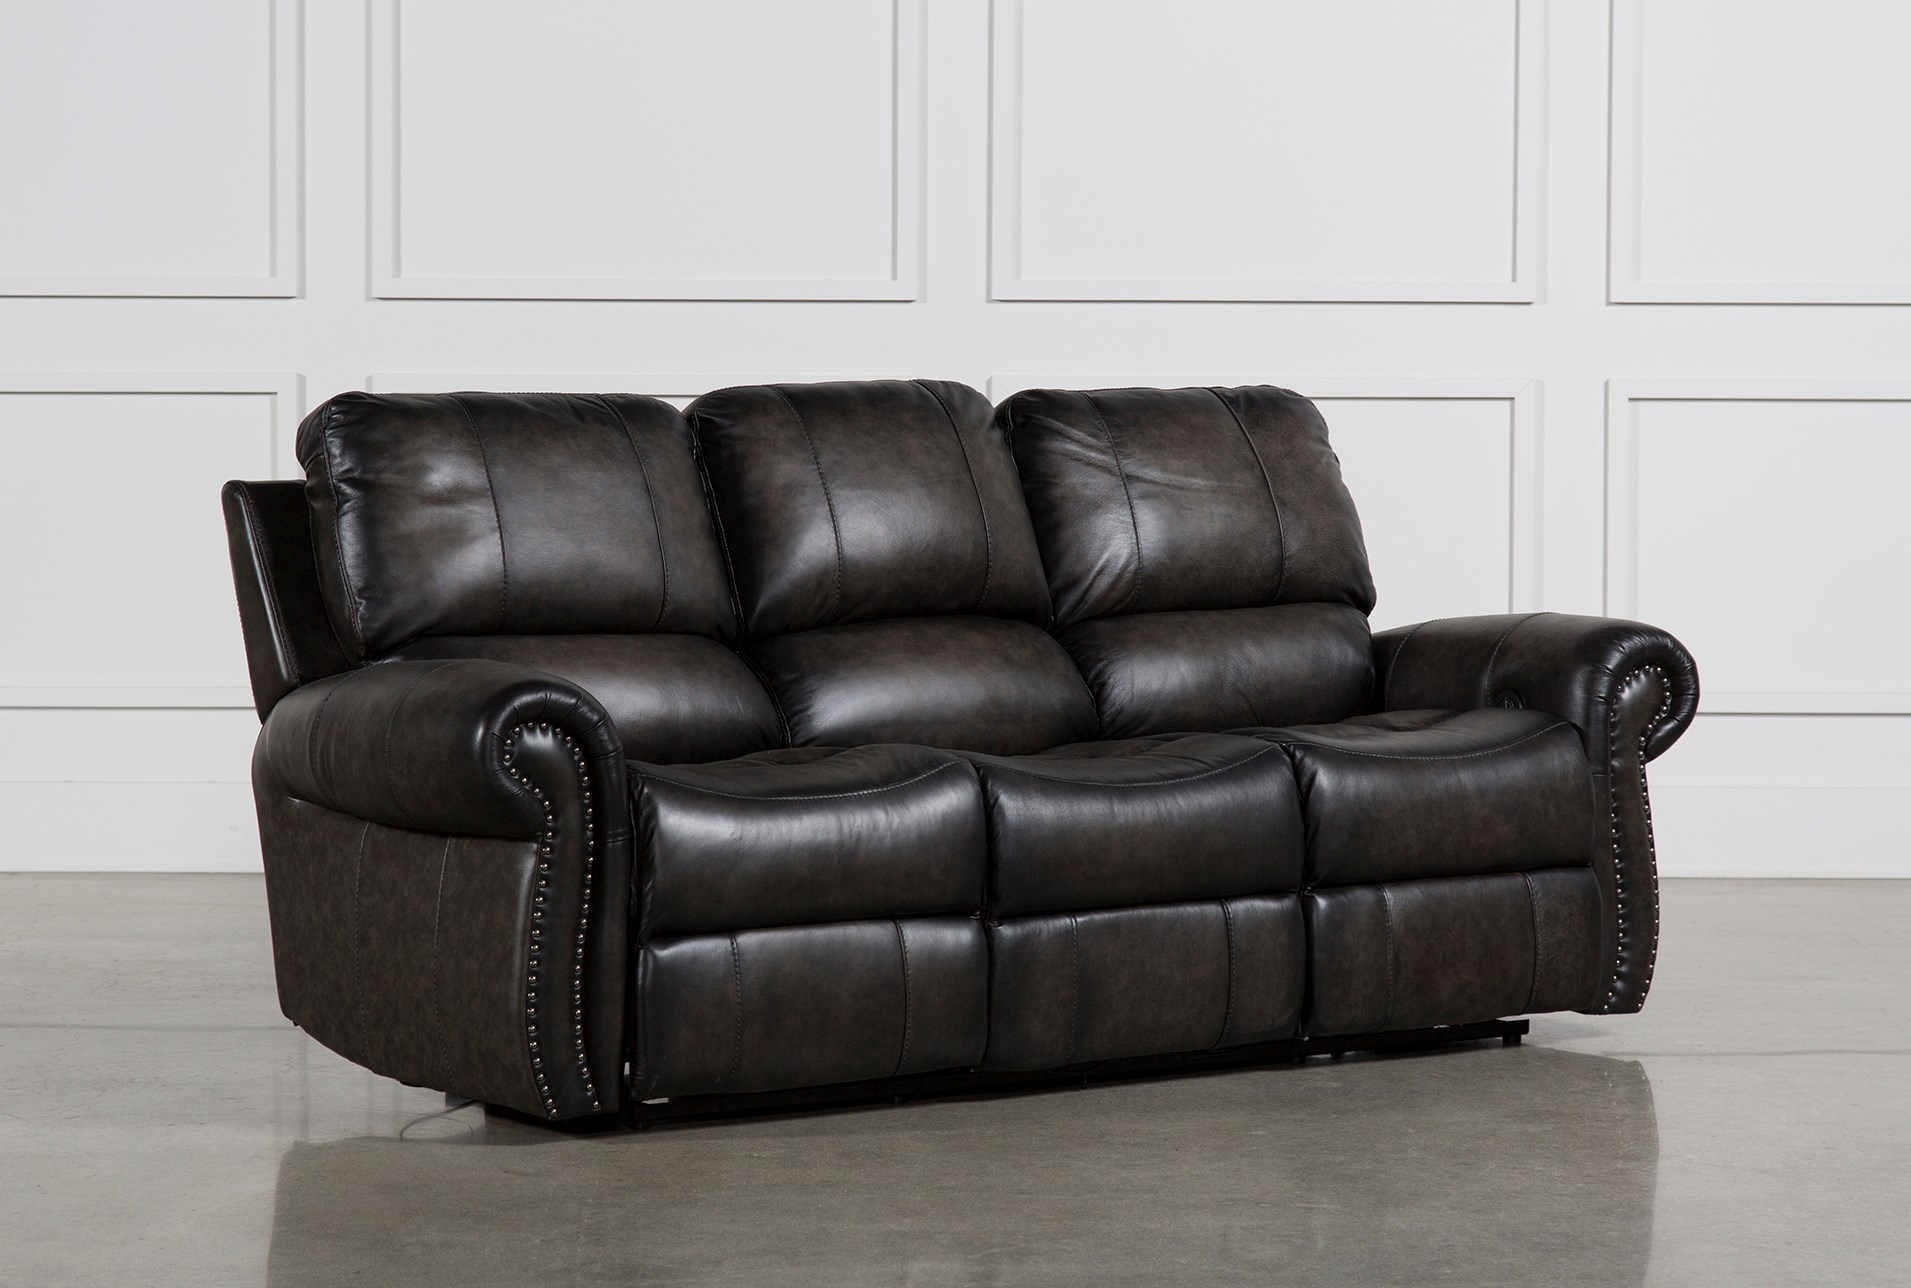 Leather Recliner Sofa Deals Abruzzo Brown Leather Reclining Sofa Sofas Thesofa